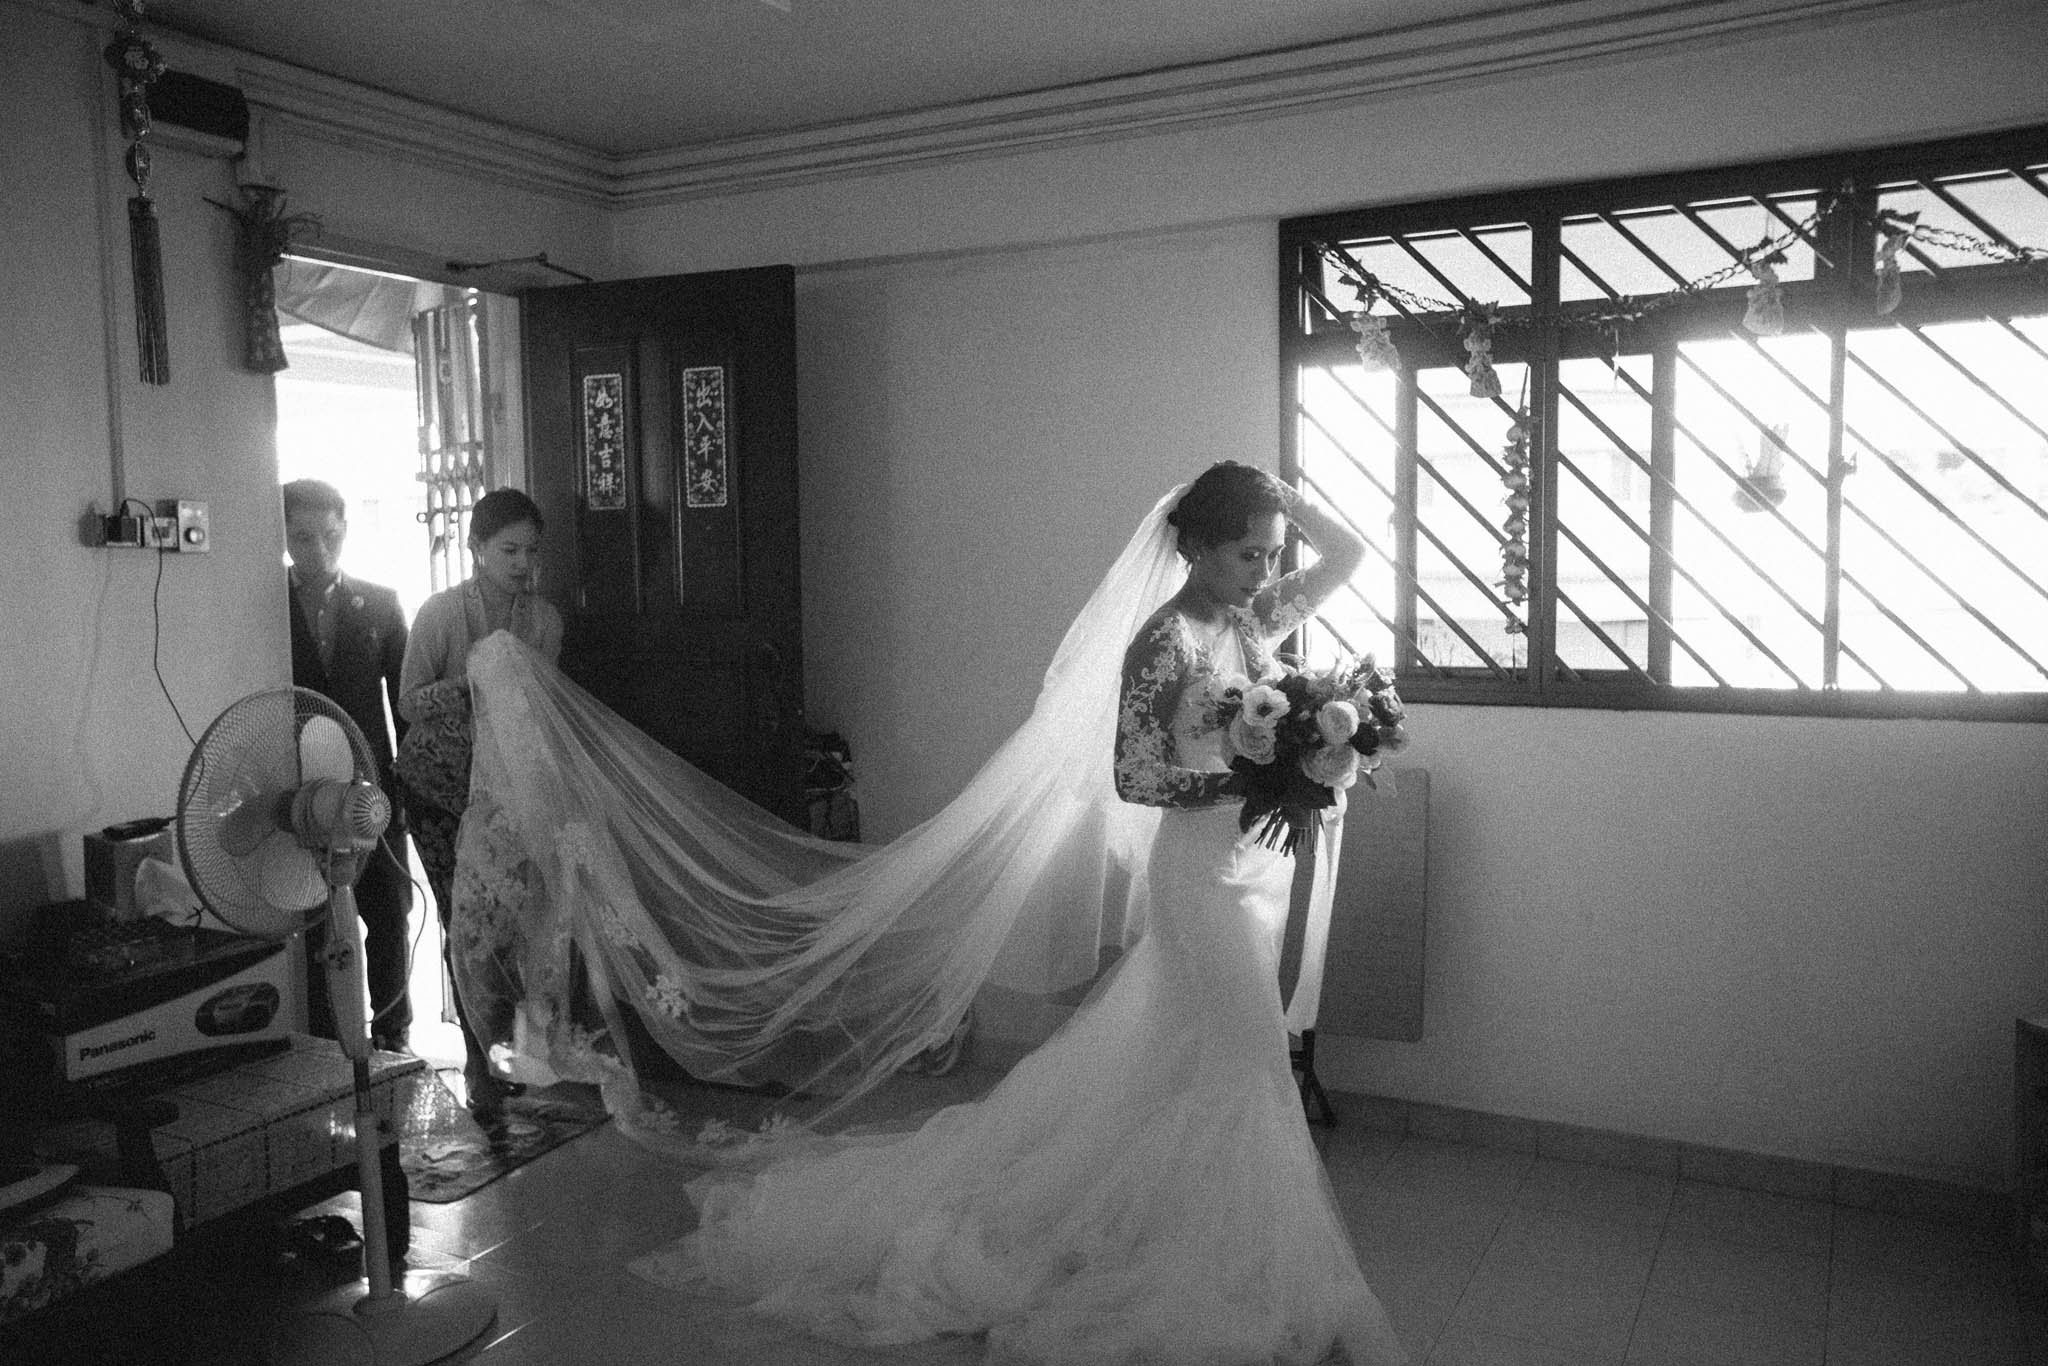 singapore-wedding-photographer-wedding-hafiana-teck-kuan-025.jpg